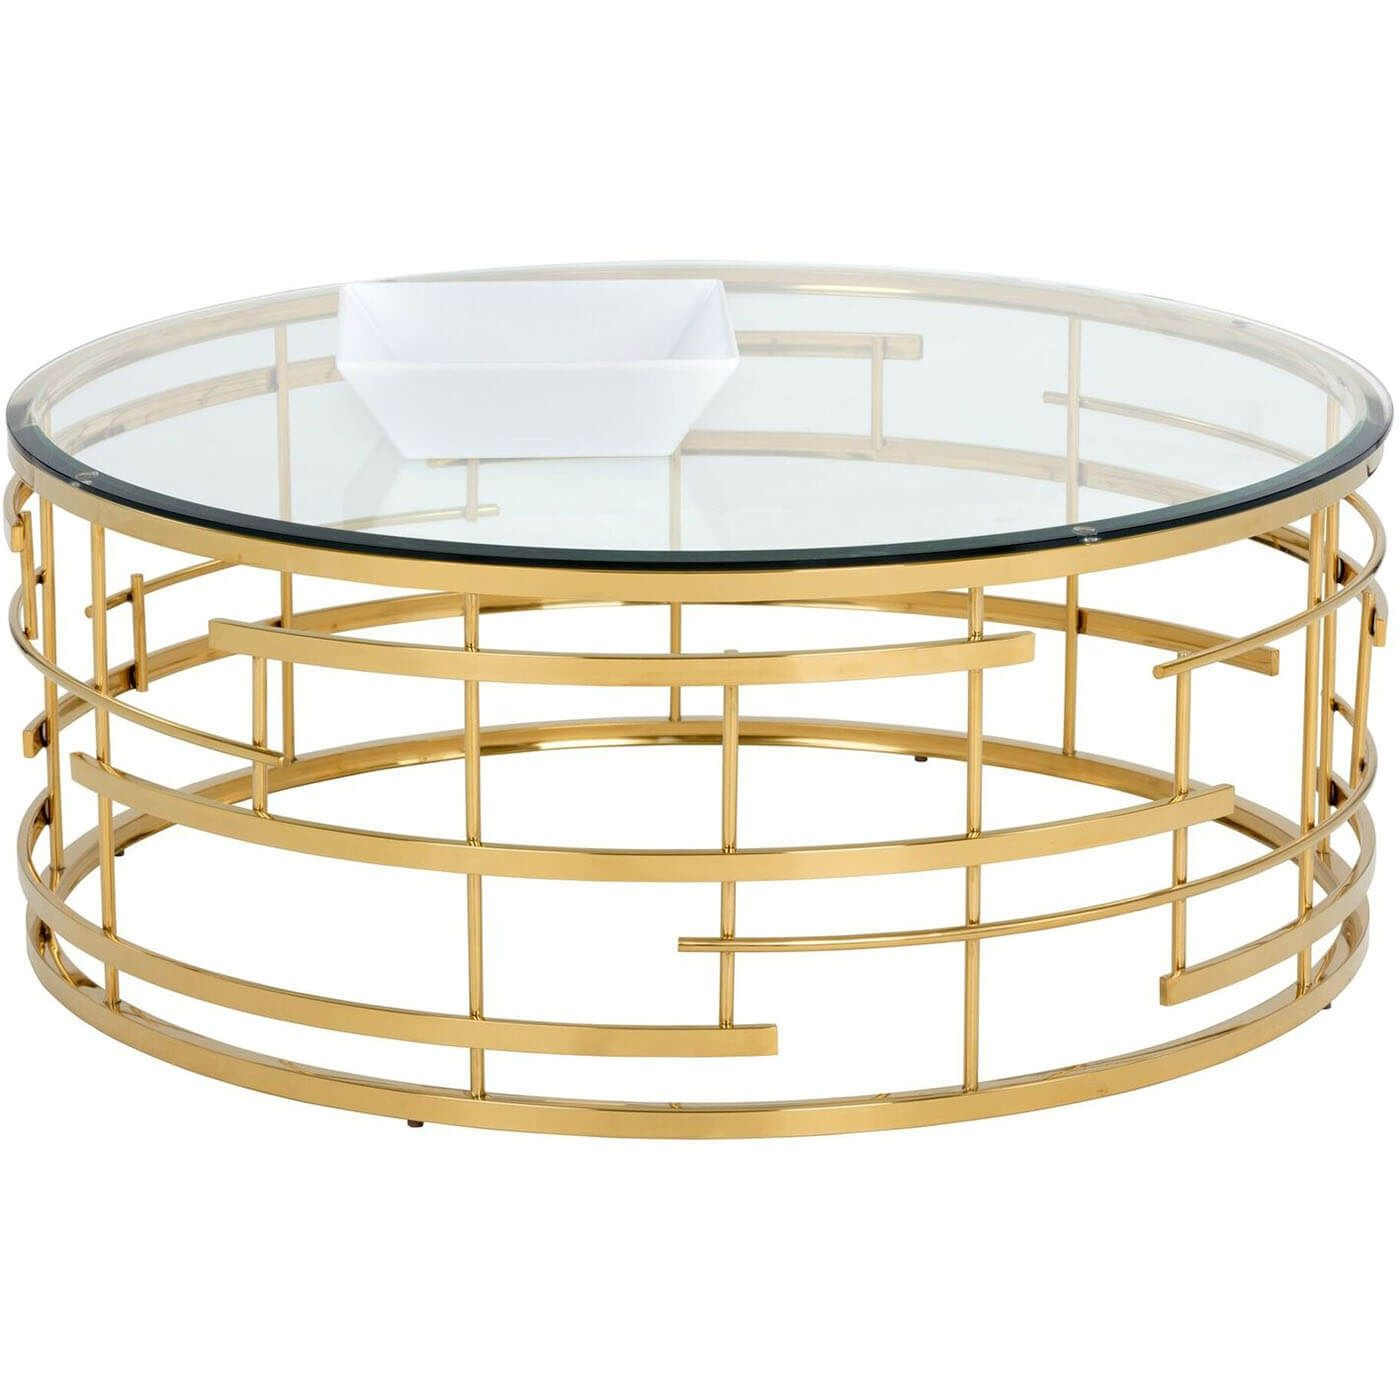 Descriptionavailable Online Only This Truly Vibrant Coffee Table From Our Ikon Collection Pays Ode Gold Coffee Table Glass Top Coffee Table Round Coffee Table [ 1400 x 1400 Pixel ]